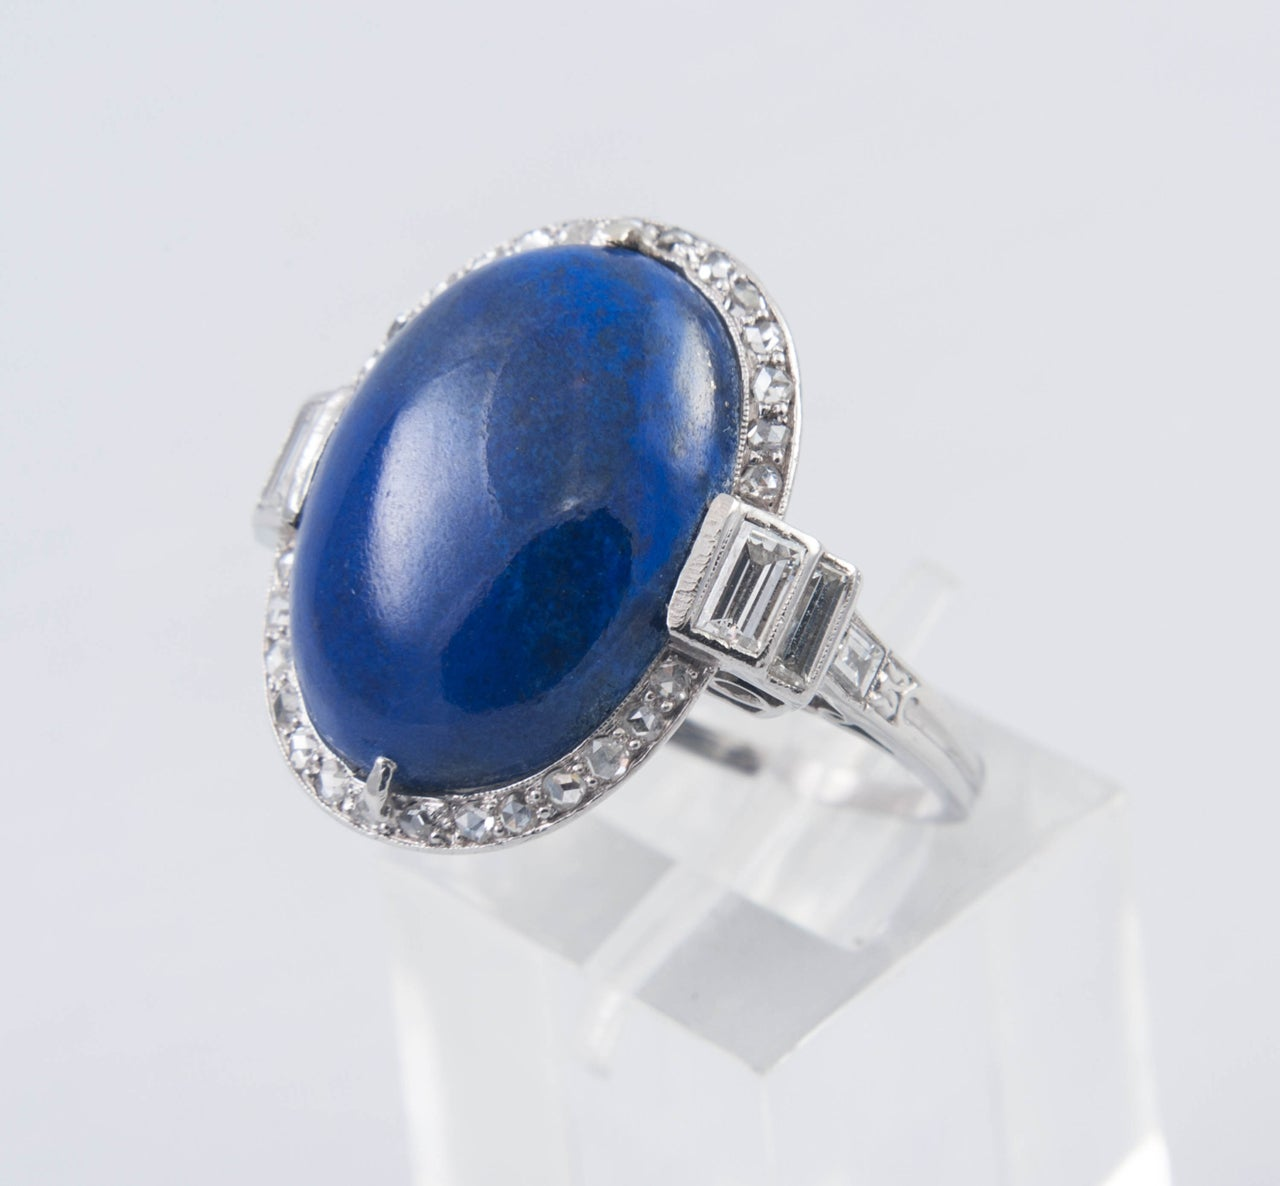 Art Deco Lapis Lazuli Diamond Ring 5